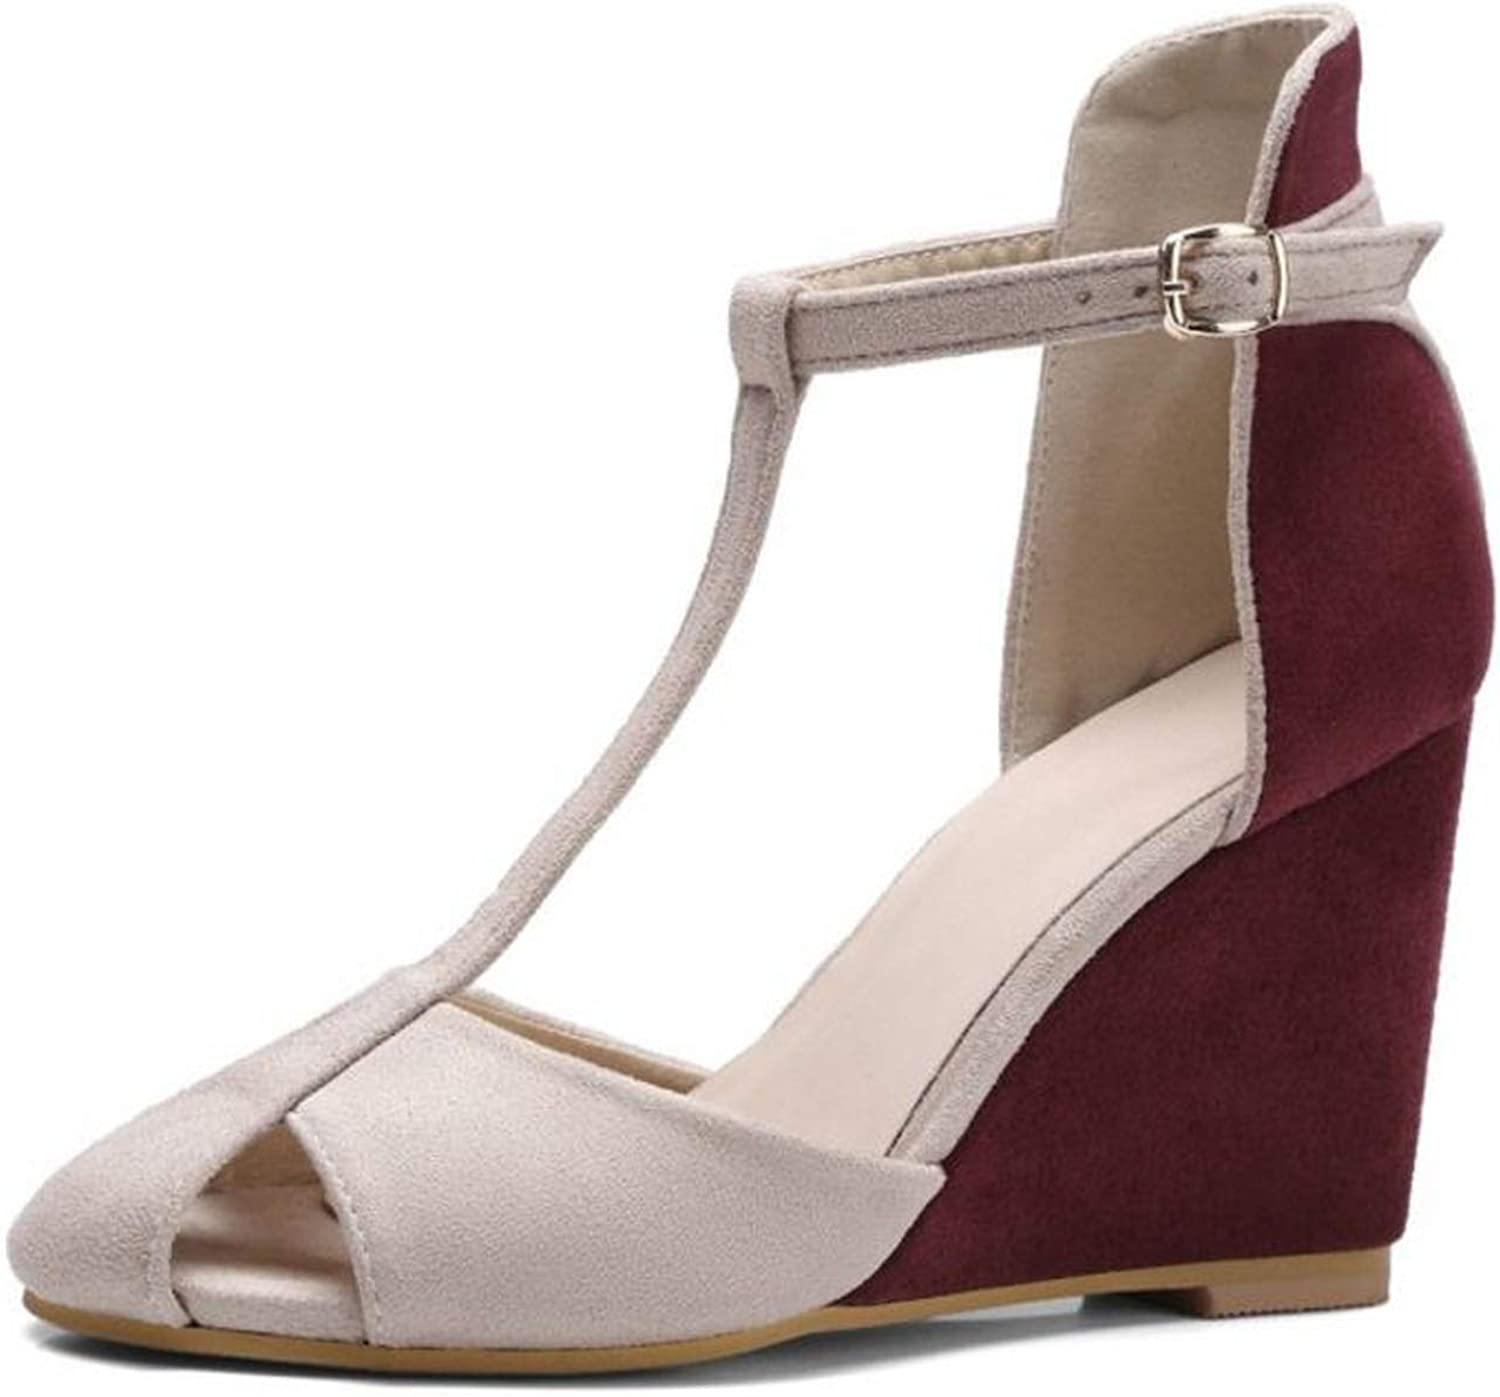 High Wedges Sandals Ankle Strap Hollow Out Wedges Sandals Summer Party shoes